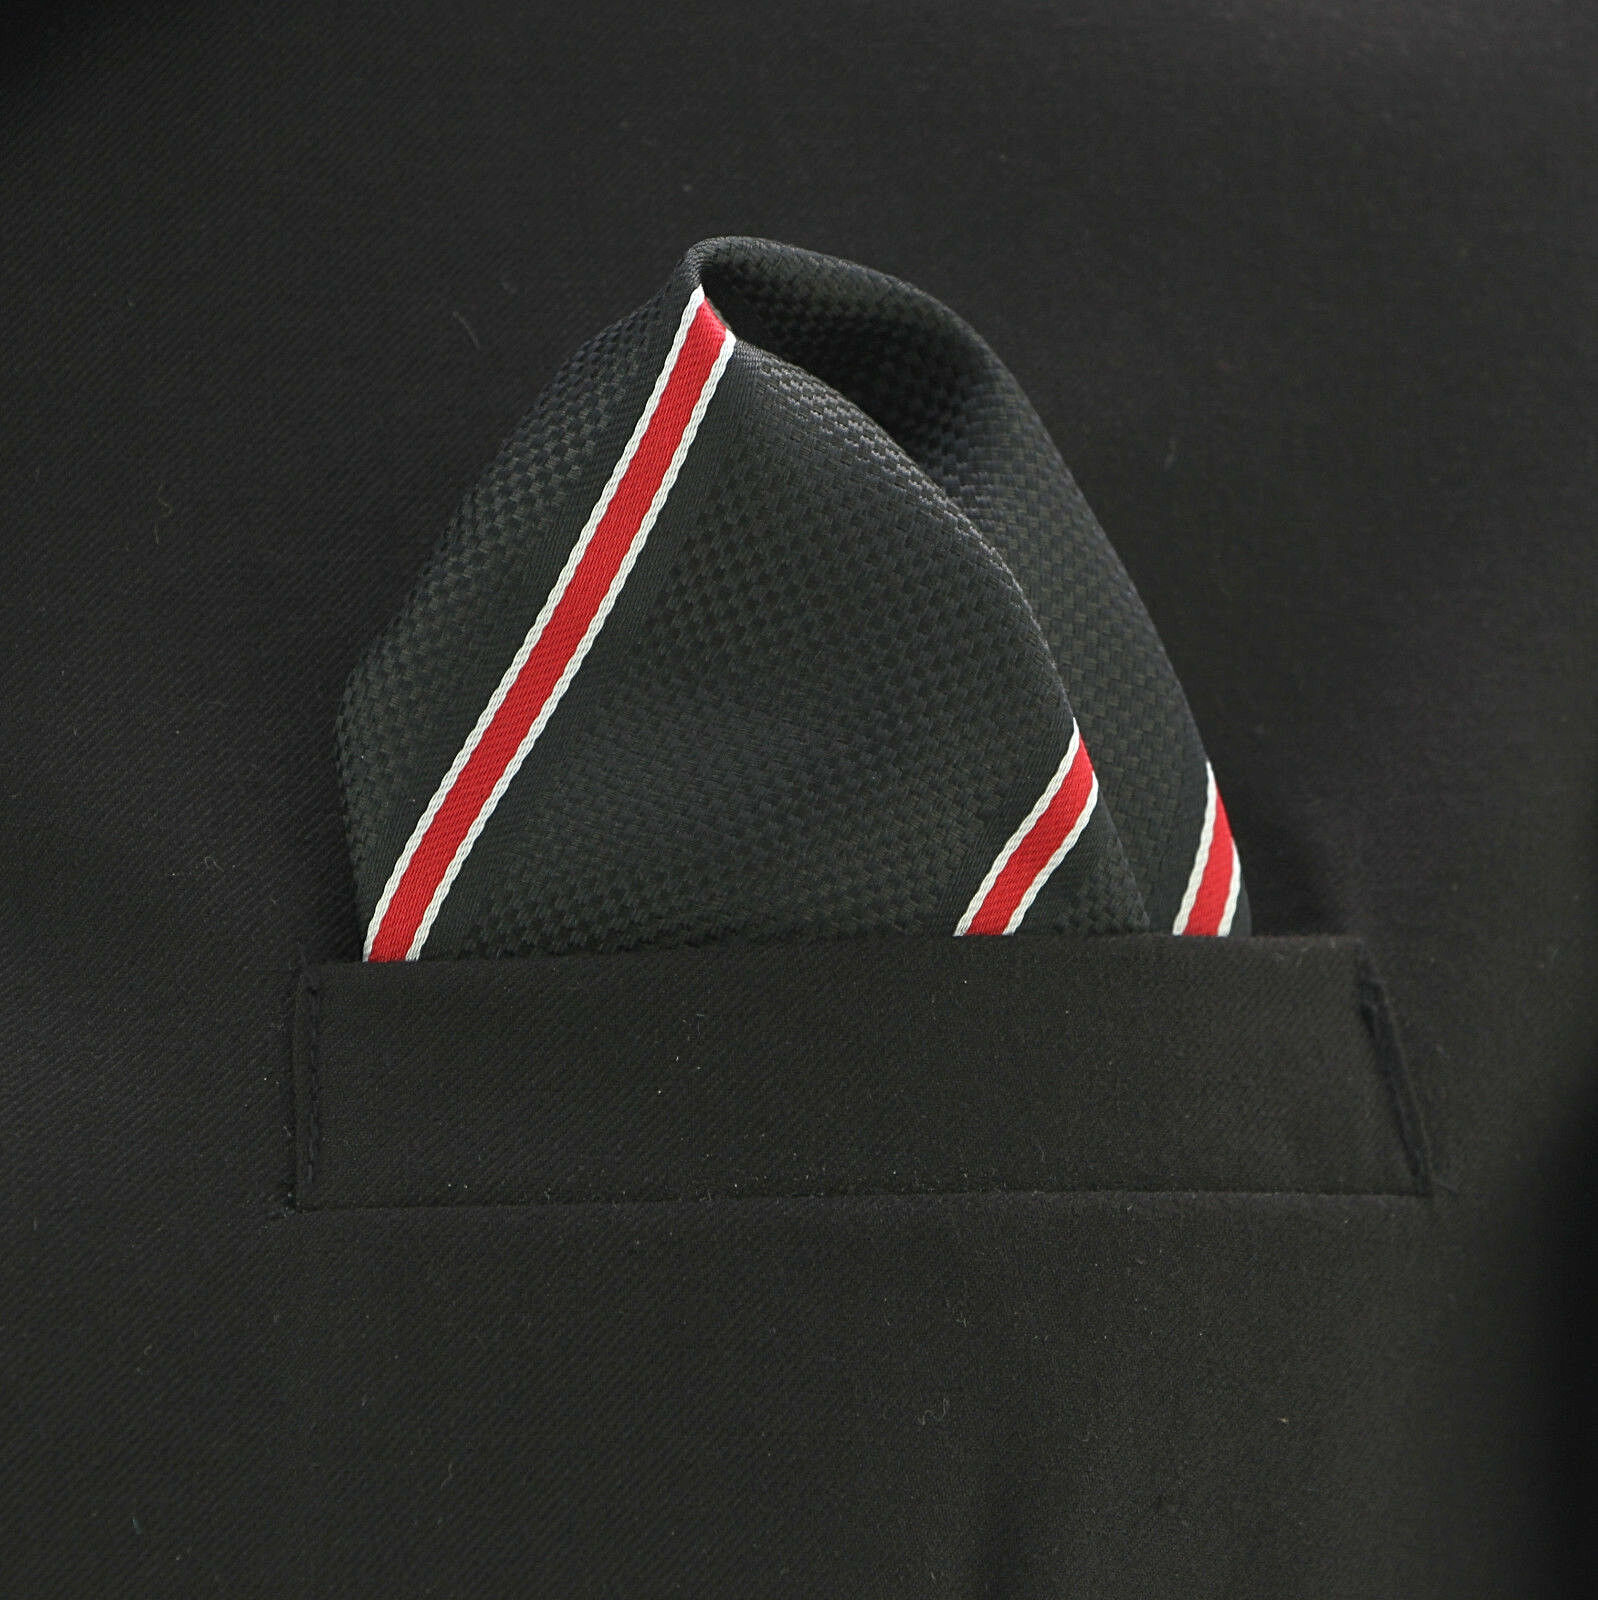 Men's Striped Pocket Square Dress Handkerchief Suit Fashion Black & Red Hanky